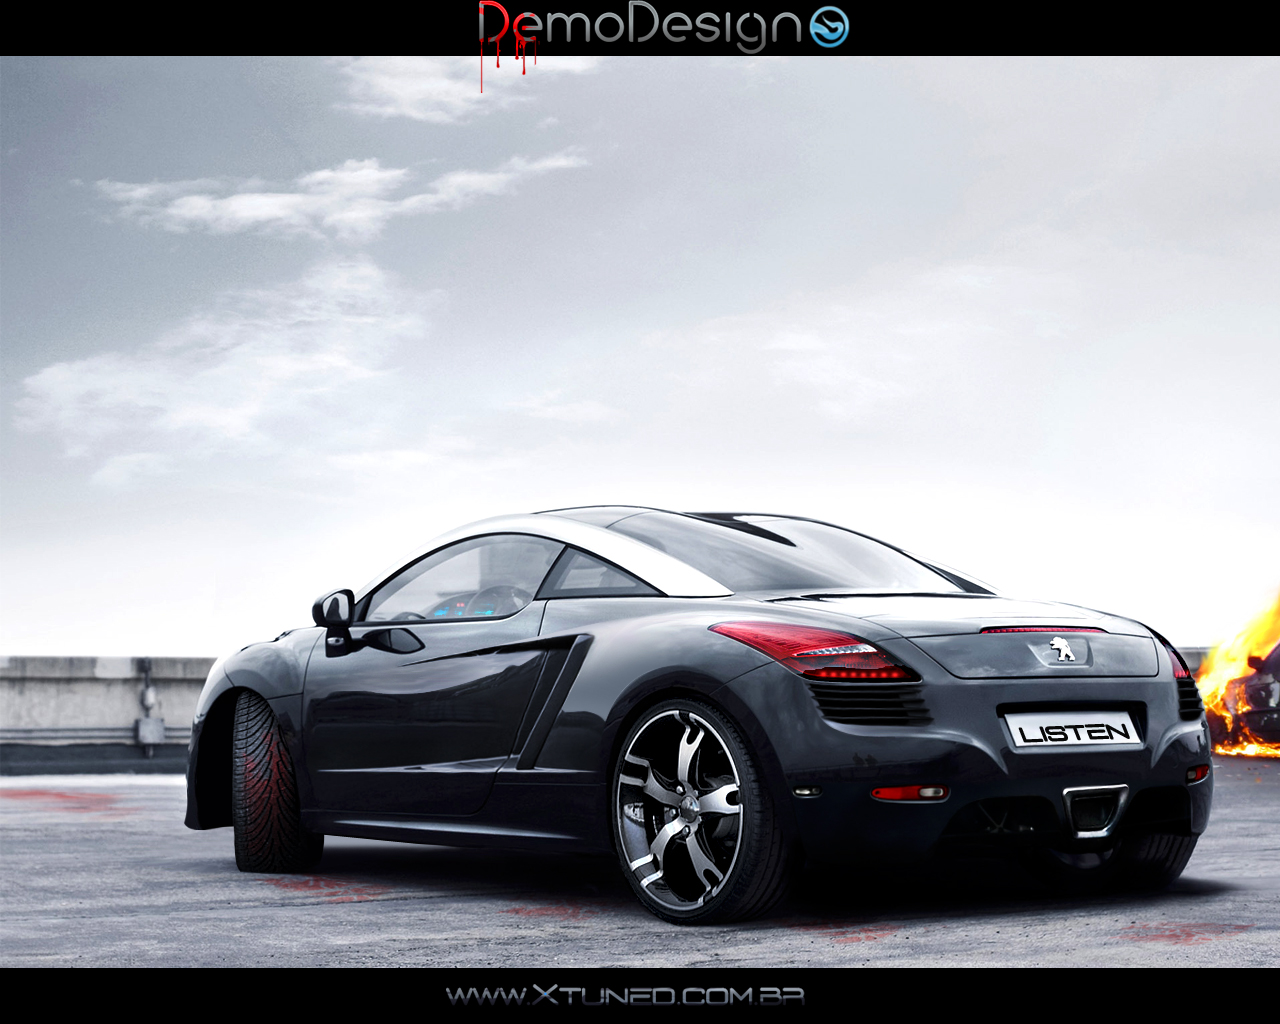 peugeot rcz cabriolet. Black Bedroom Furniture Sets. Home Design Ideas